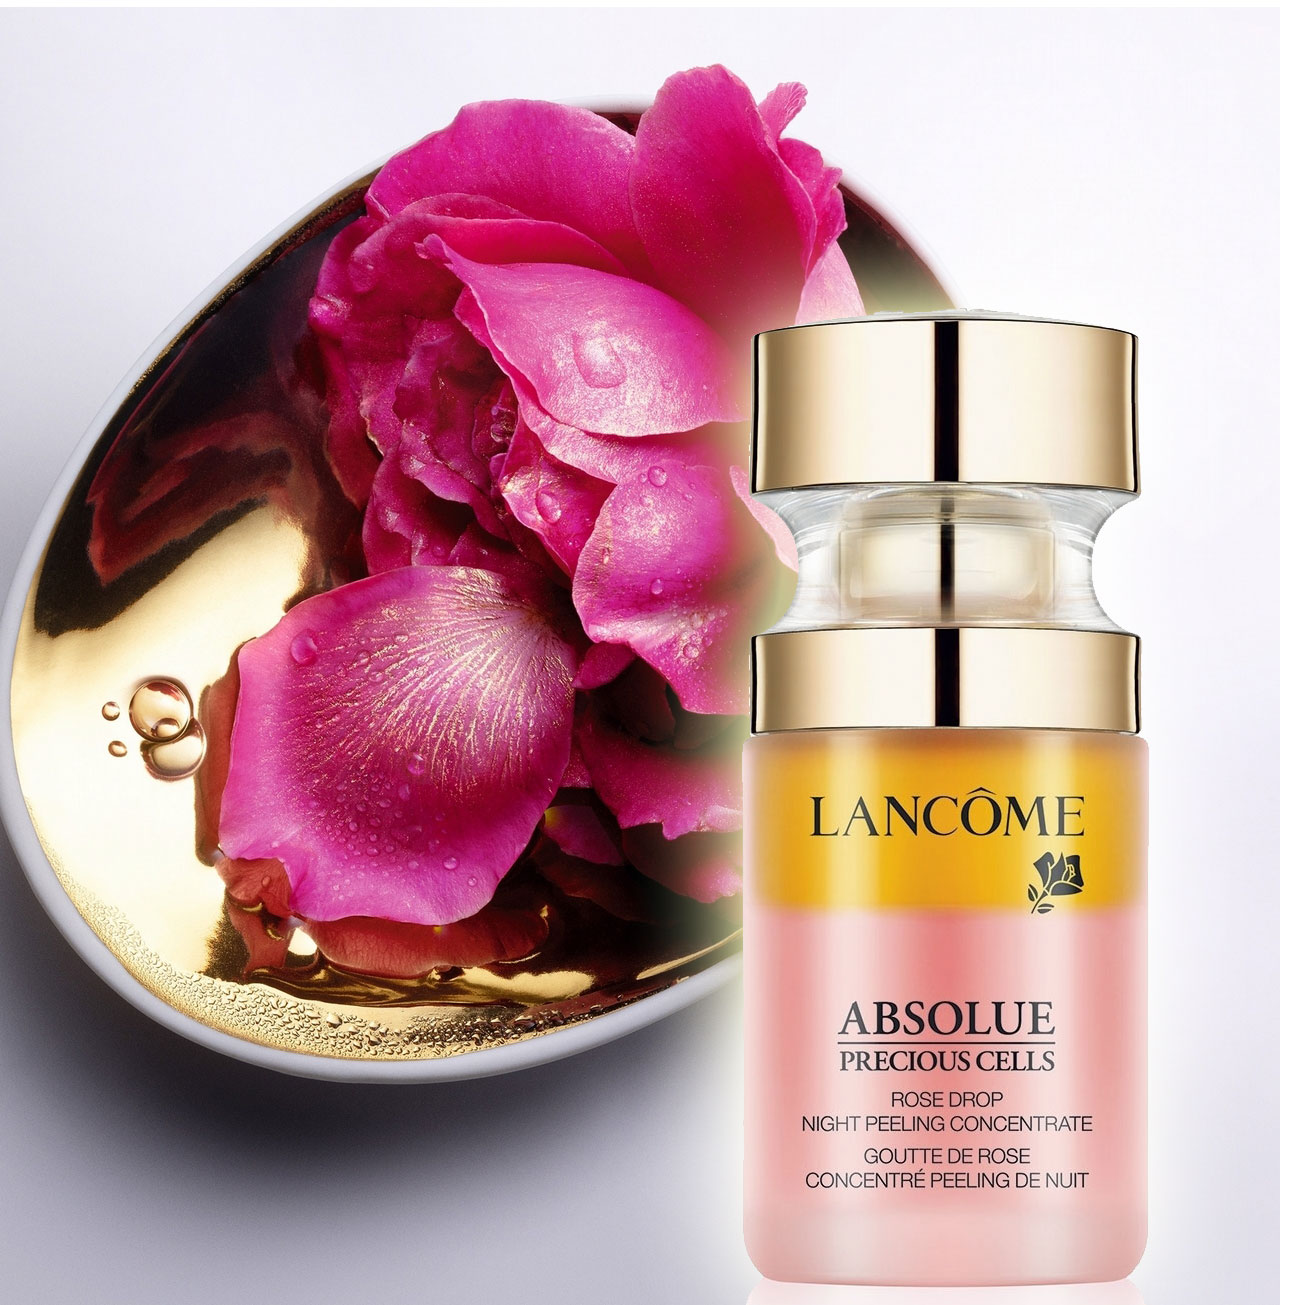 Absolue Precious Cells Rose Drop Night Peeling Concentrate sản phẩm